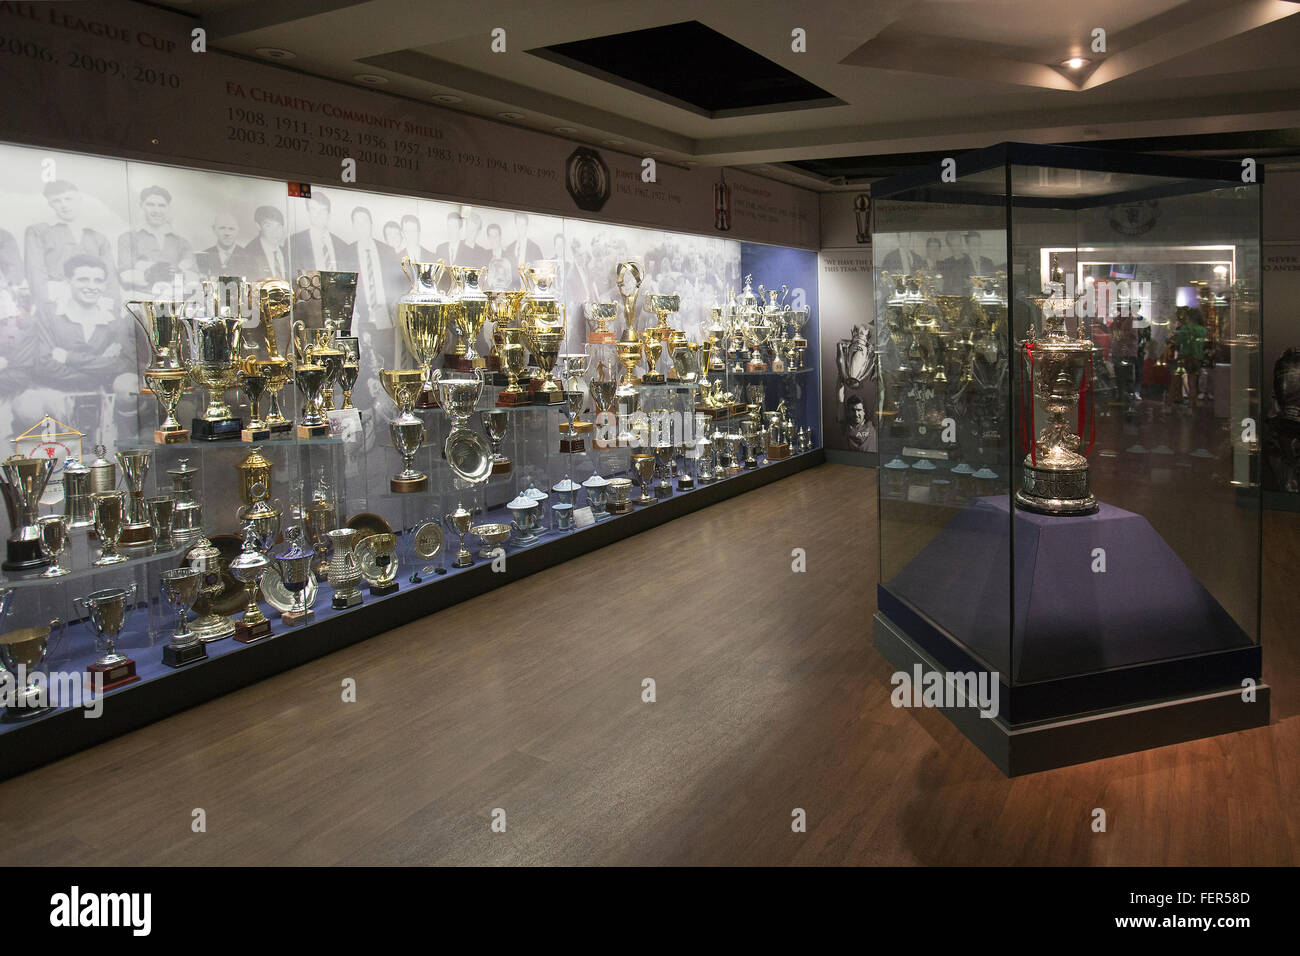 Trophy Cabinet In The Room At Old Trafford Stadium Home To Manchester United FC